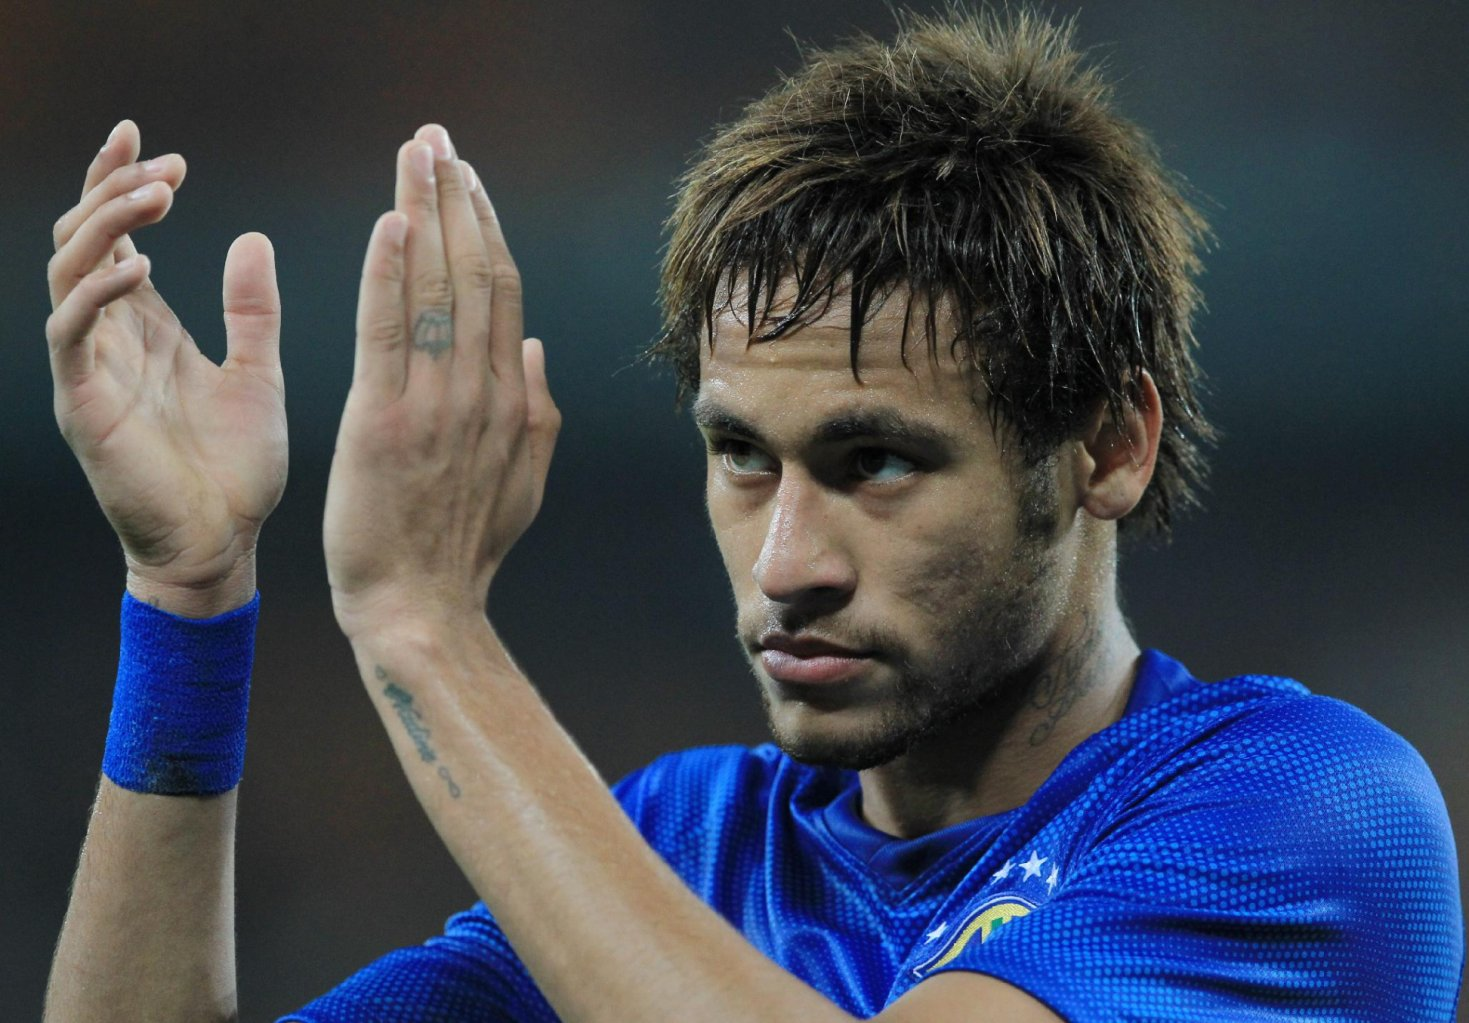 Neymar clapping his hands in a Brazil blue jersey